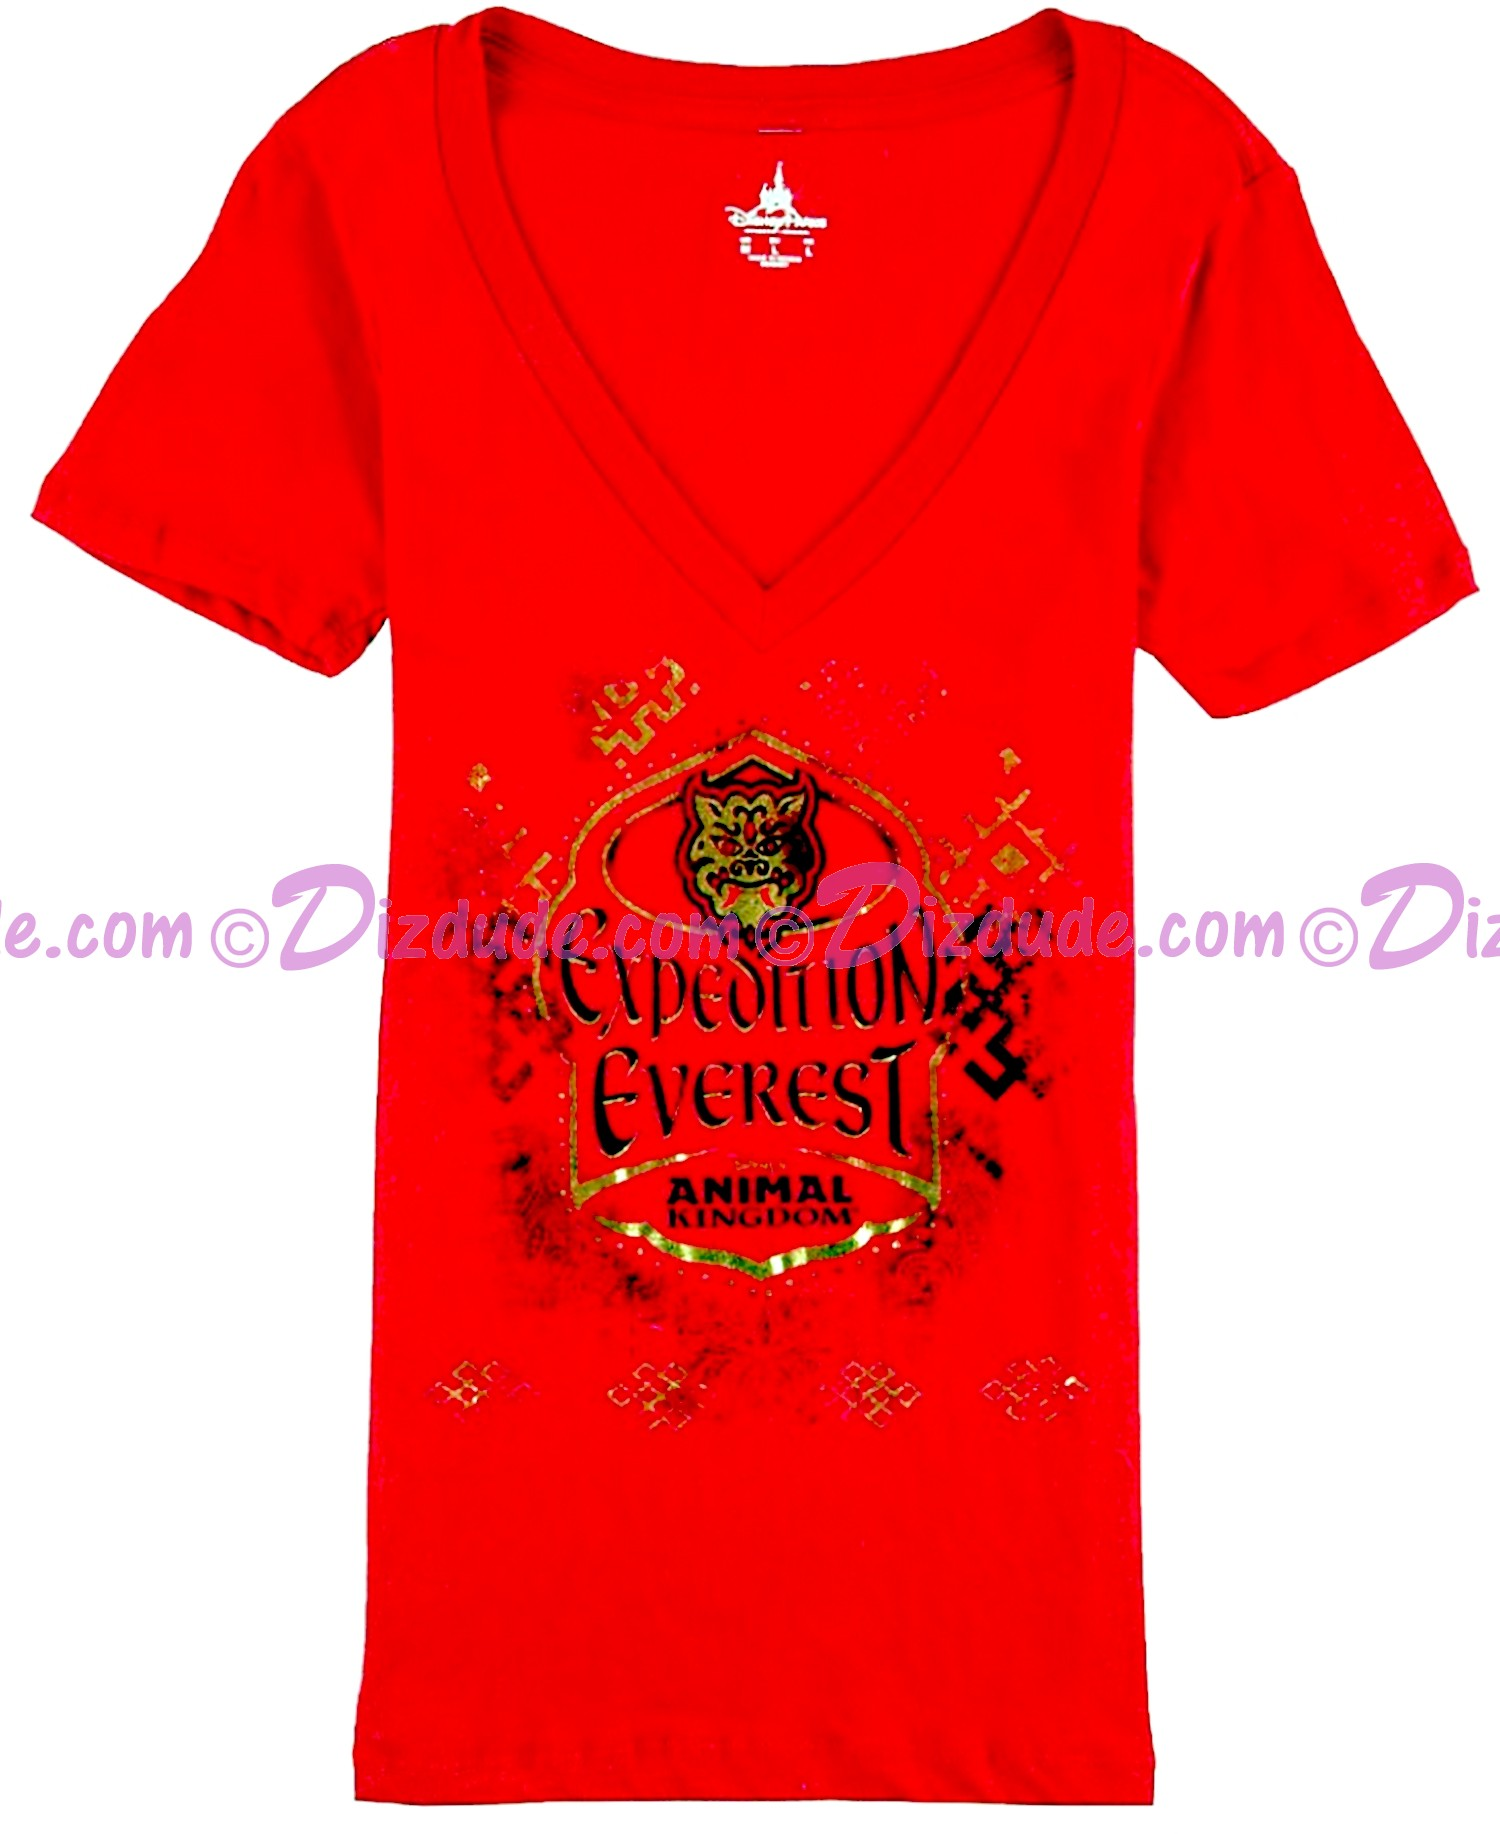 (SOLD OUT) Expedition Everest V-Neck Red Adult T-Shirt (Tee, Tshirt or T shirt) ~ Disney Animal Kingdoms